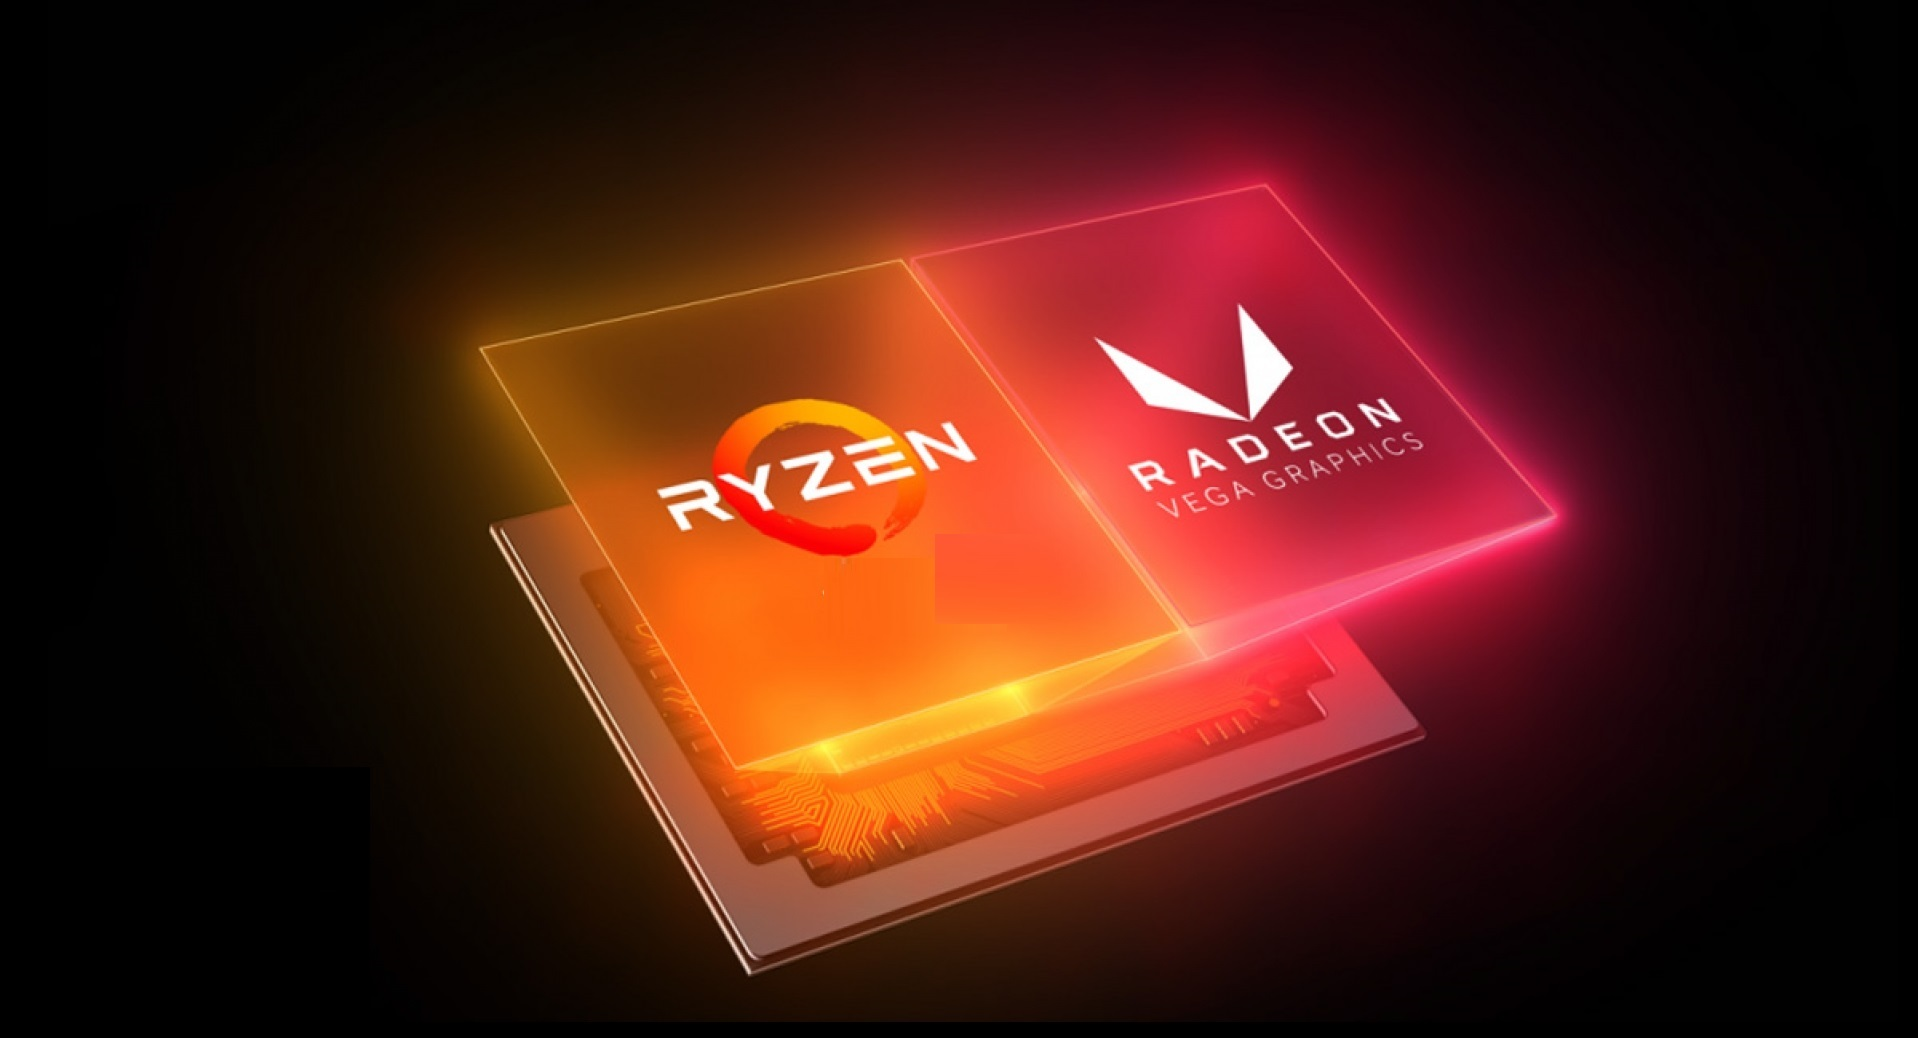 AMD Ryzen 3000 'Picasso' APU WIth 12nm Zen+ Cores Leaks Out